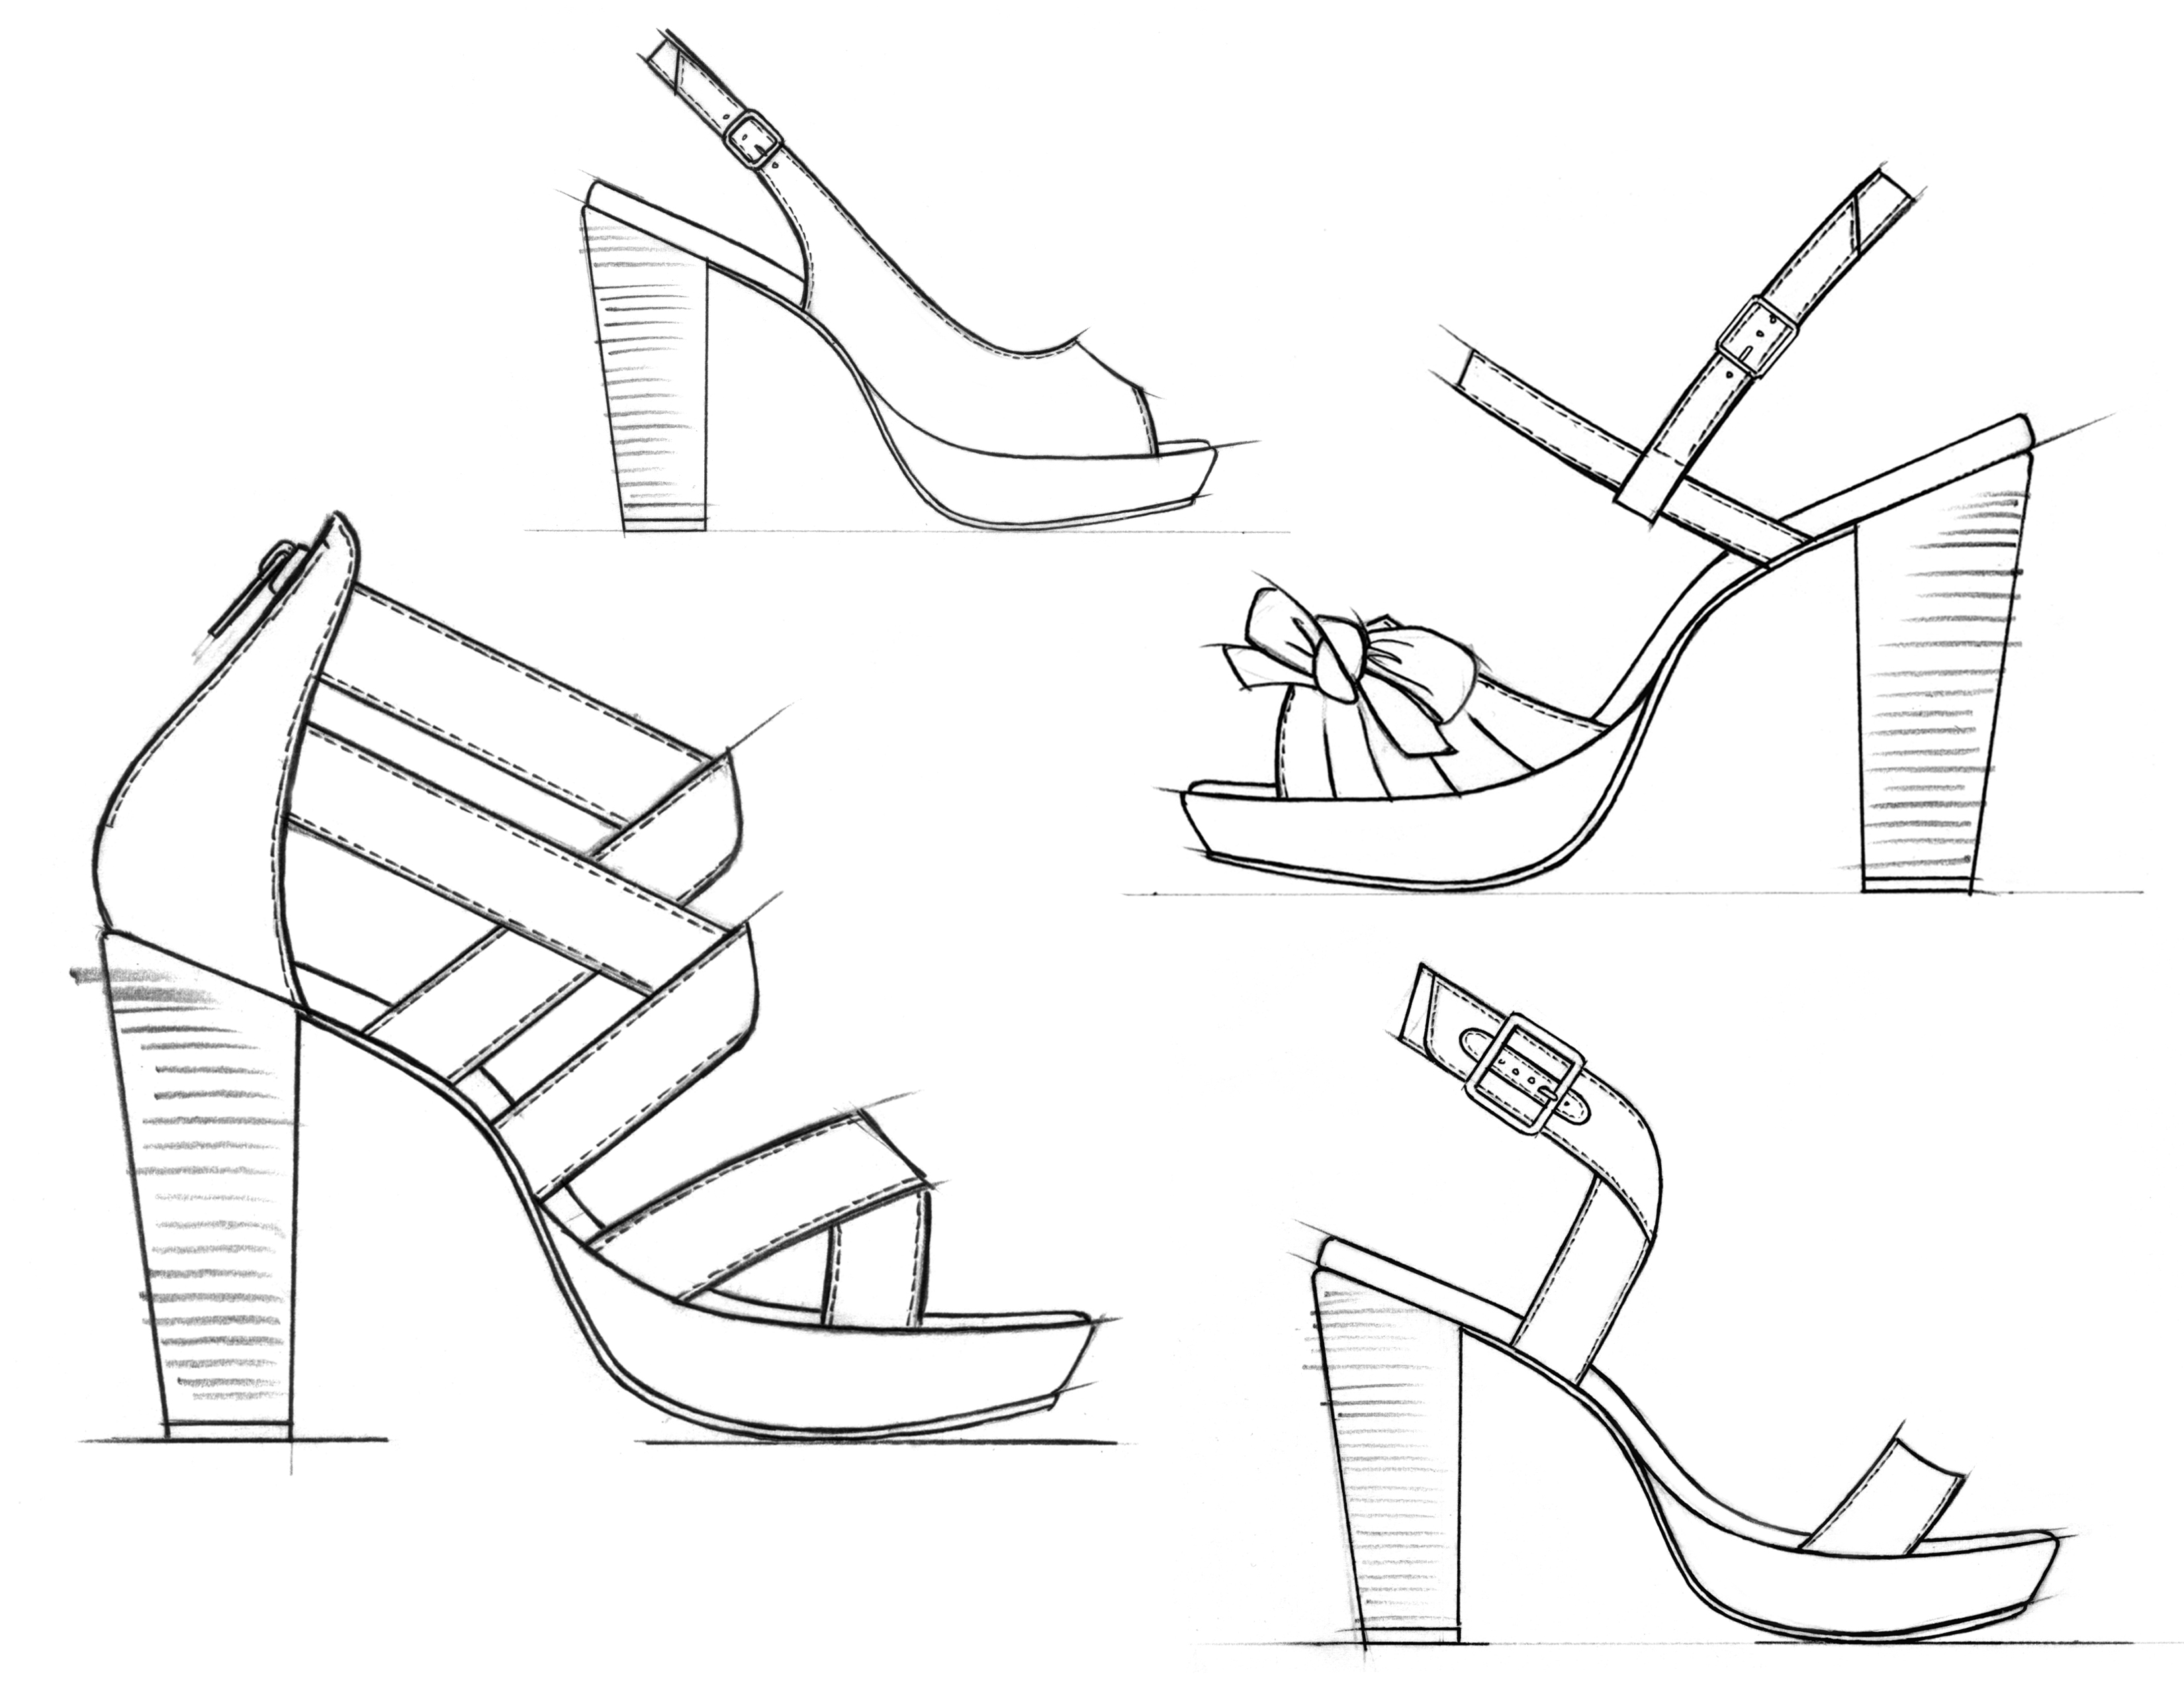 how to draw a high heel step by step how to draw anime shoes step by step shoe step anime heel to by high step a how draw step